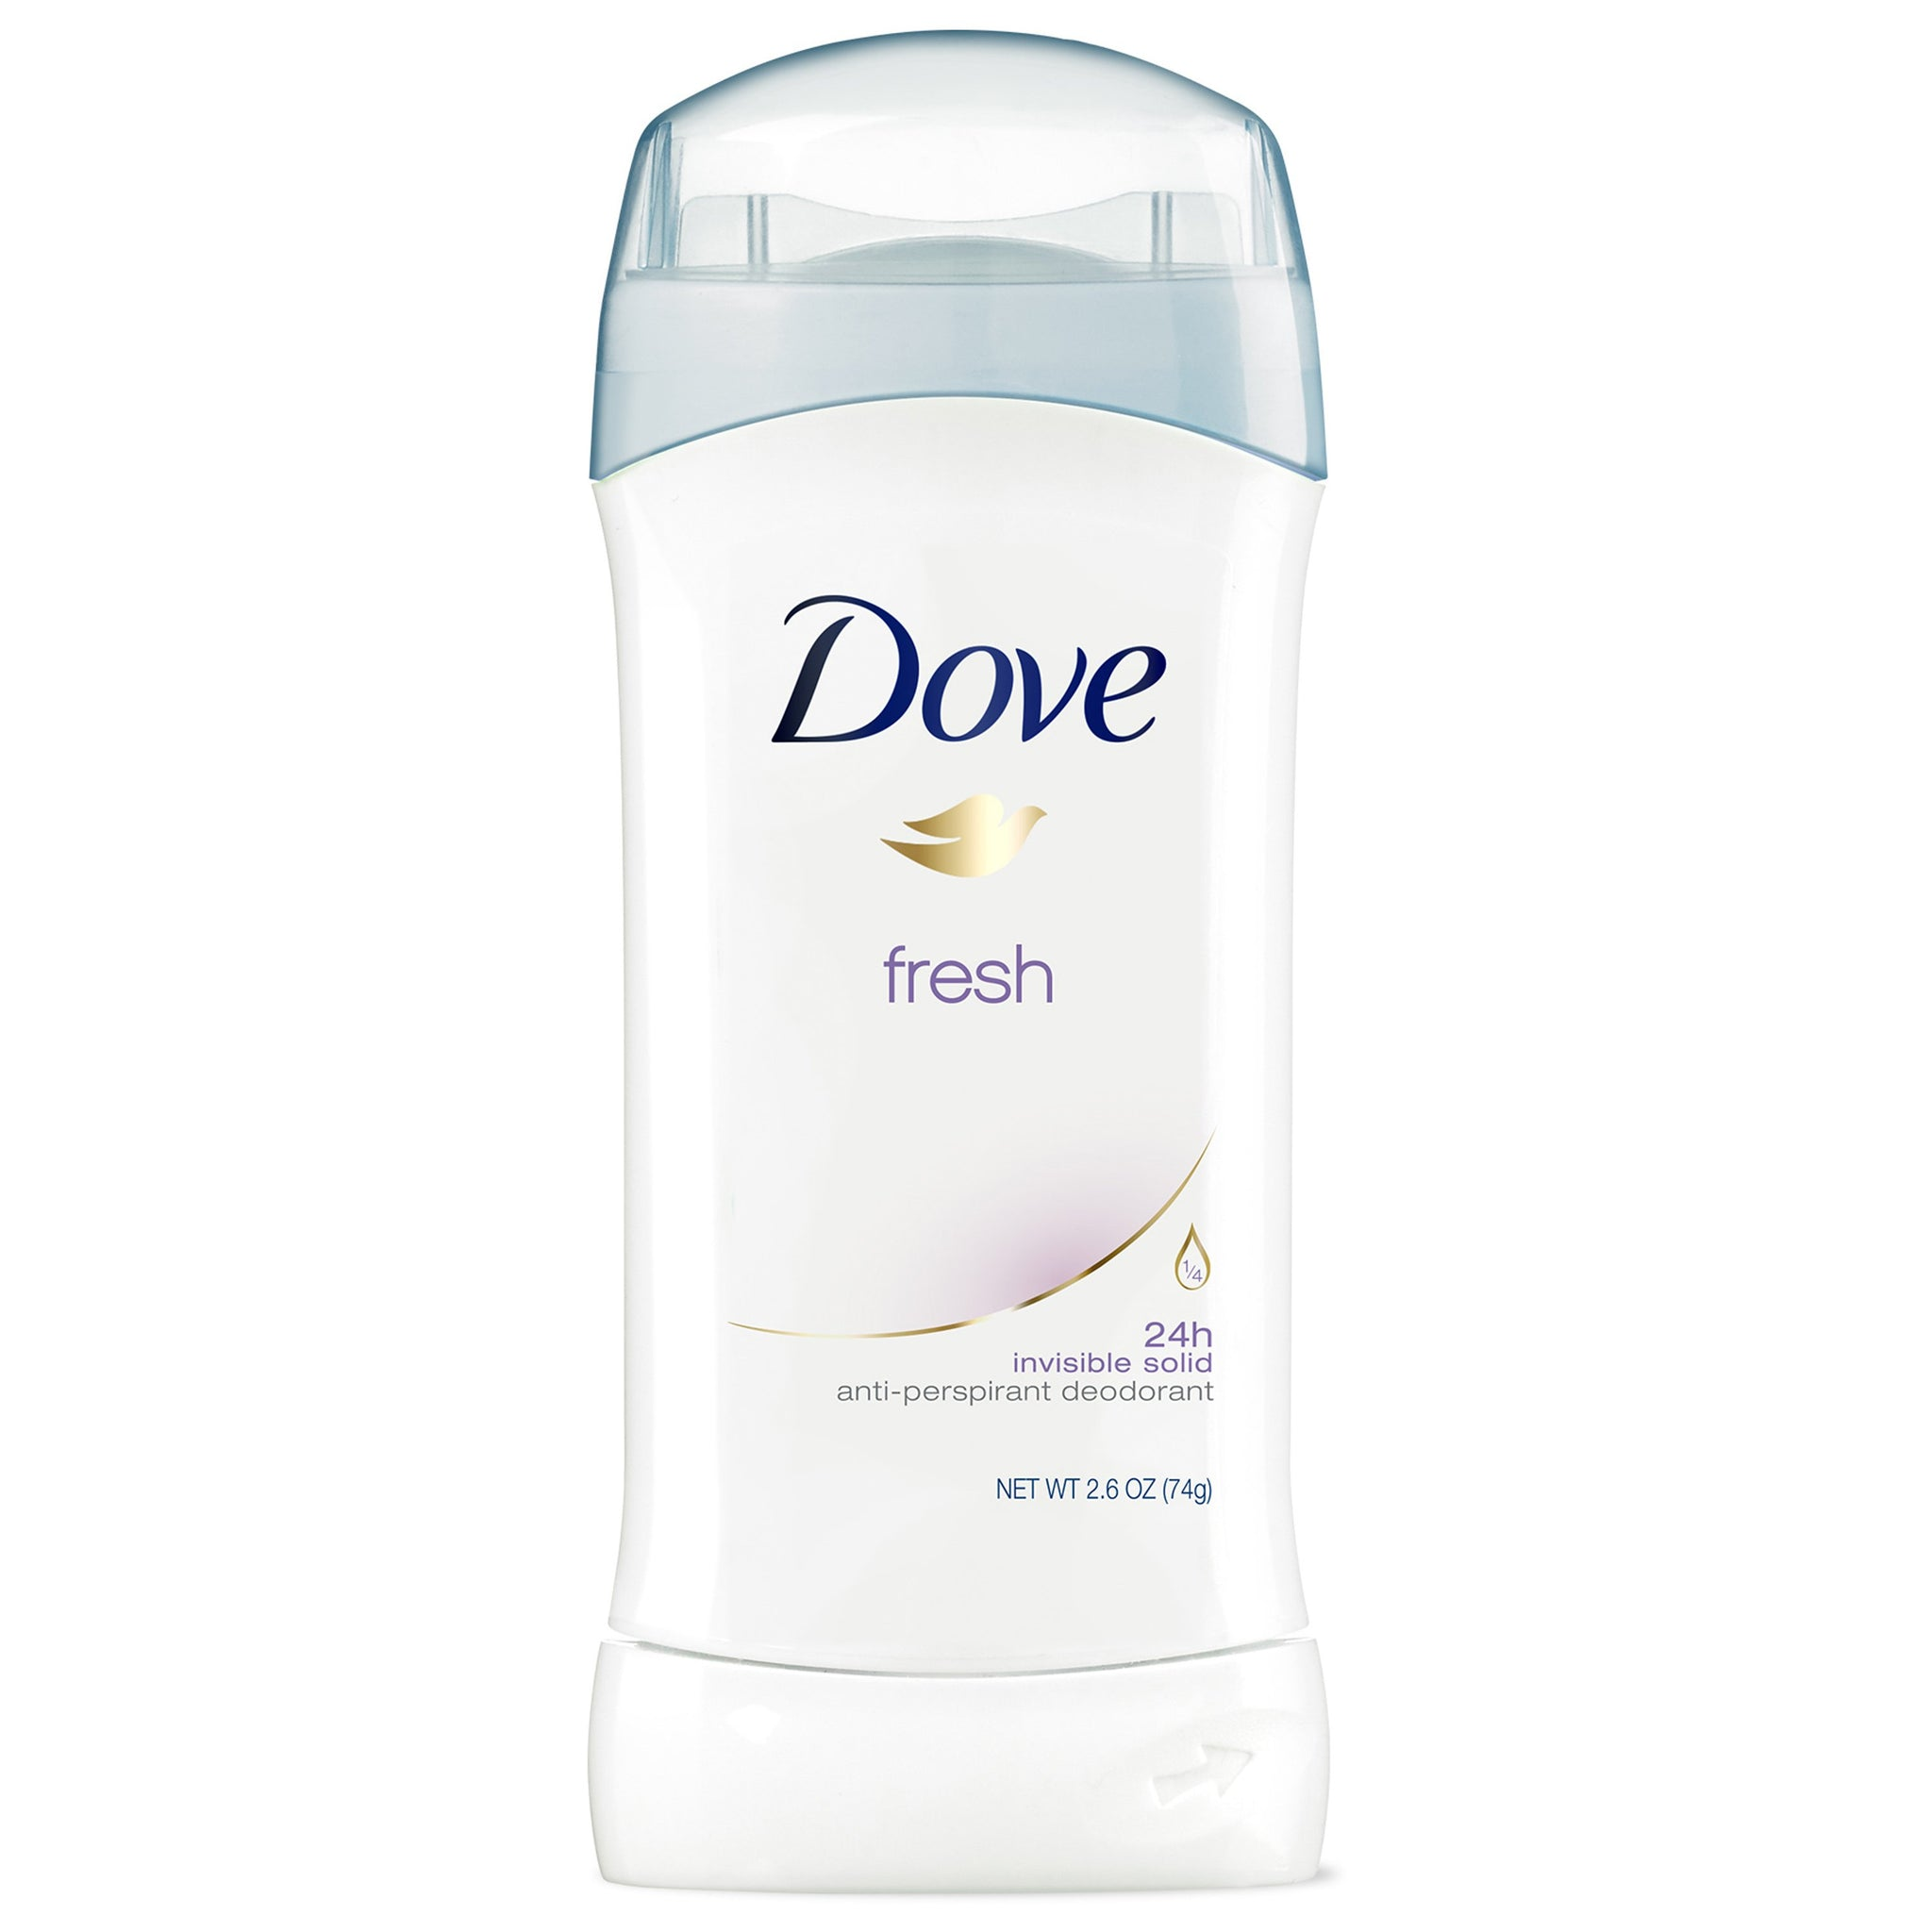 bel>Dove Deodorant, Ladies